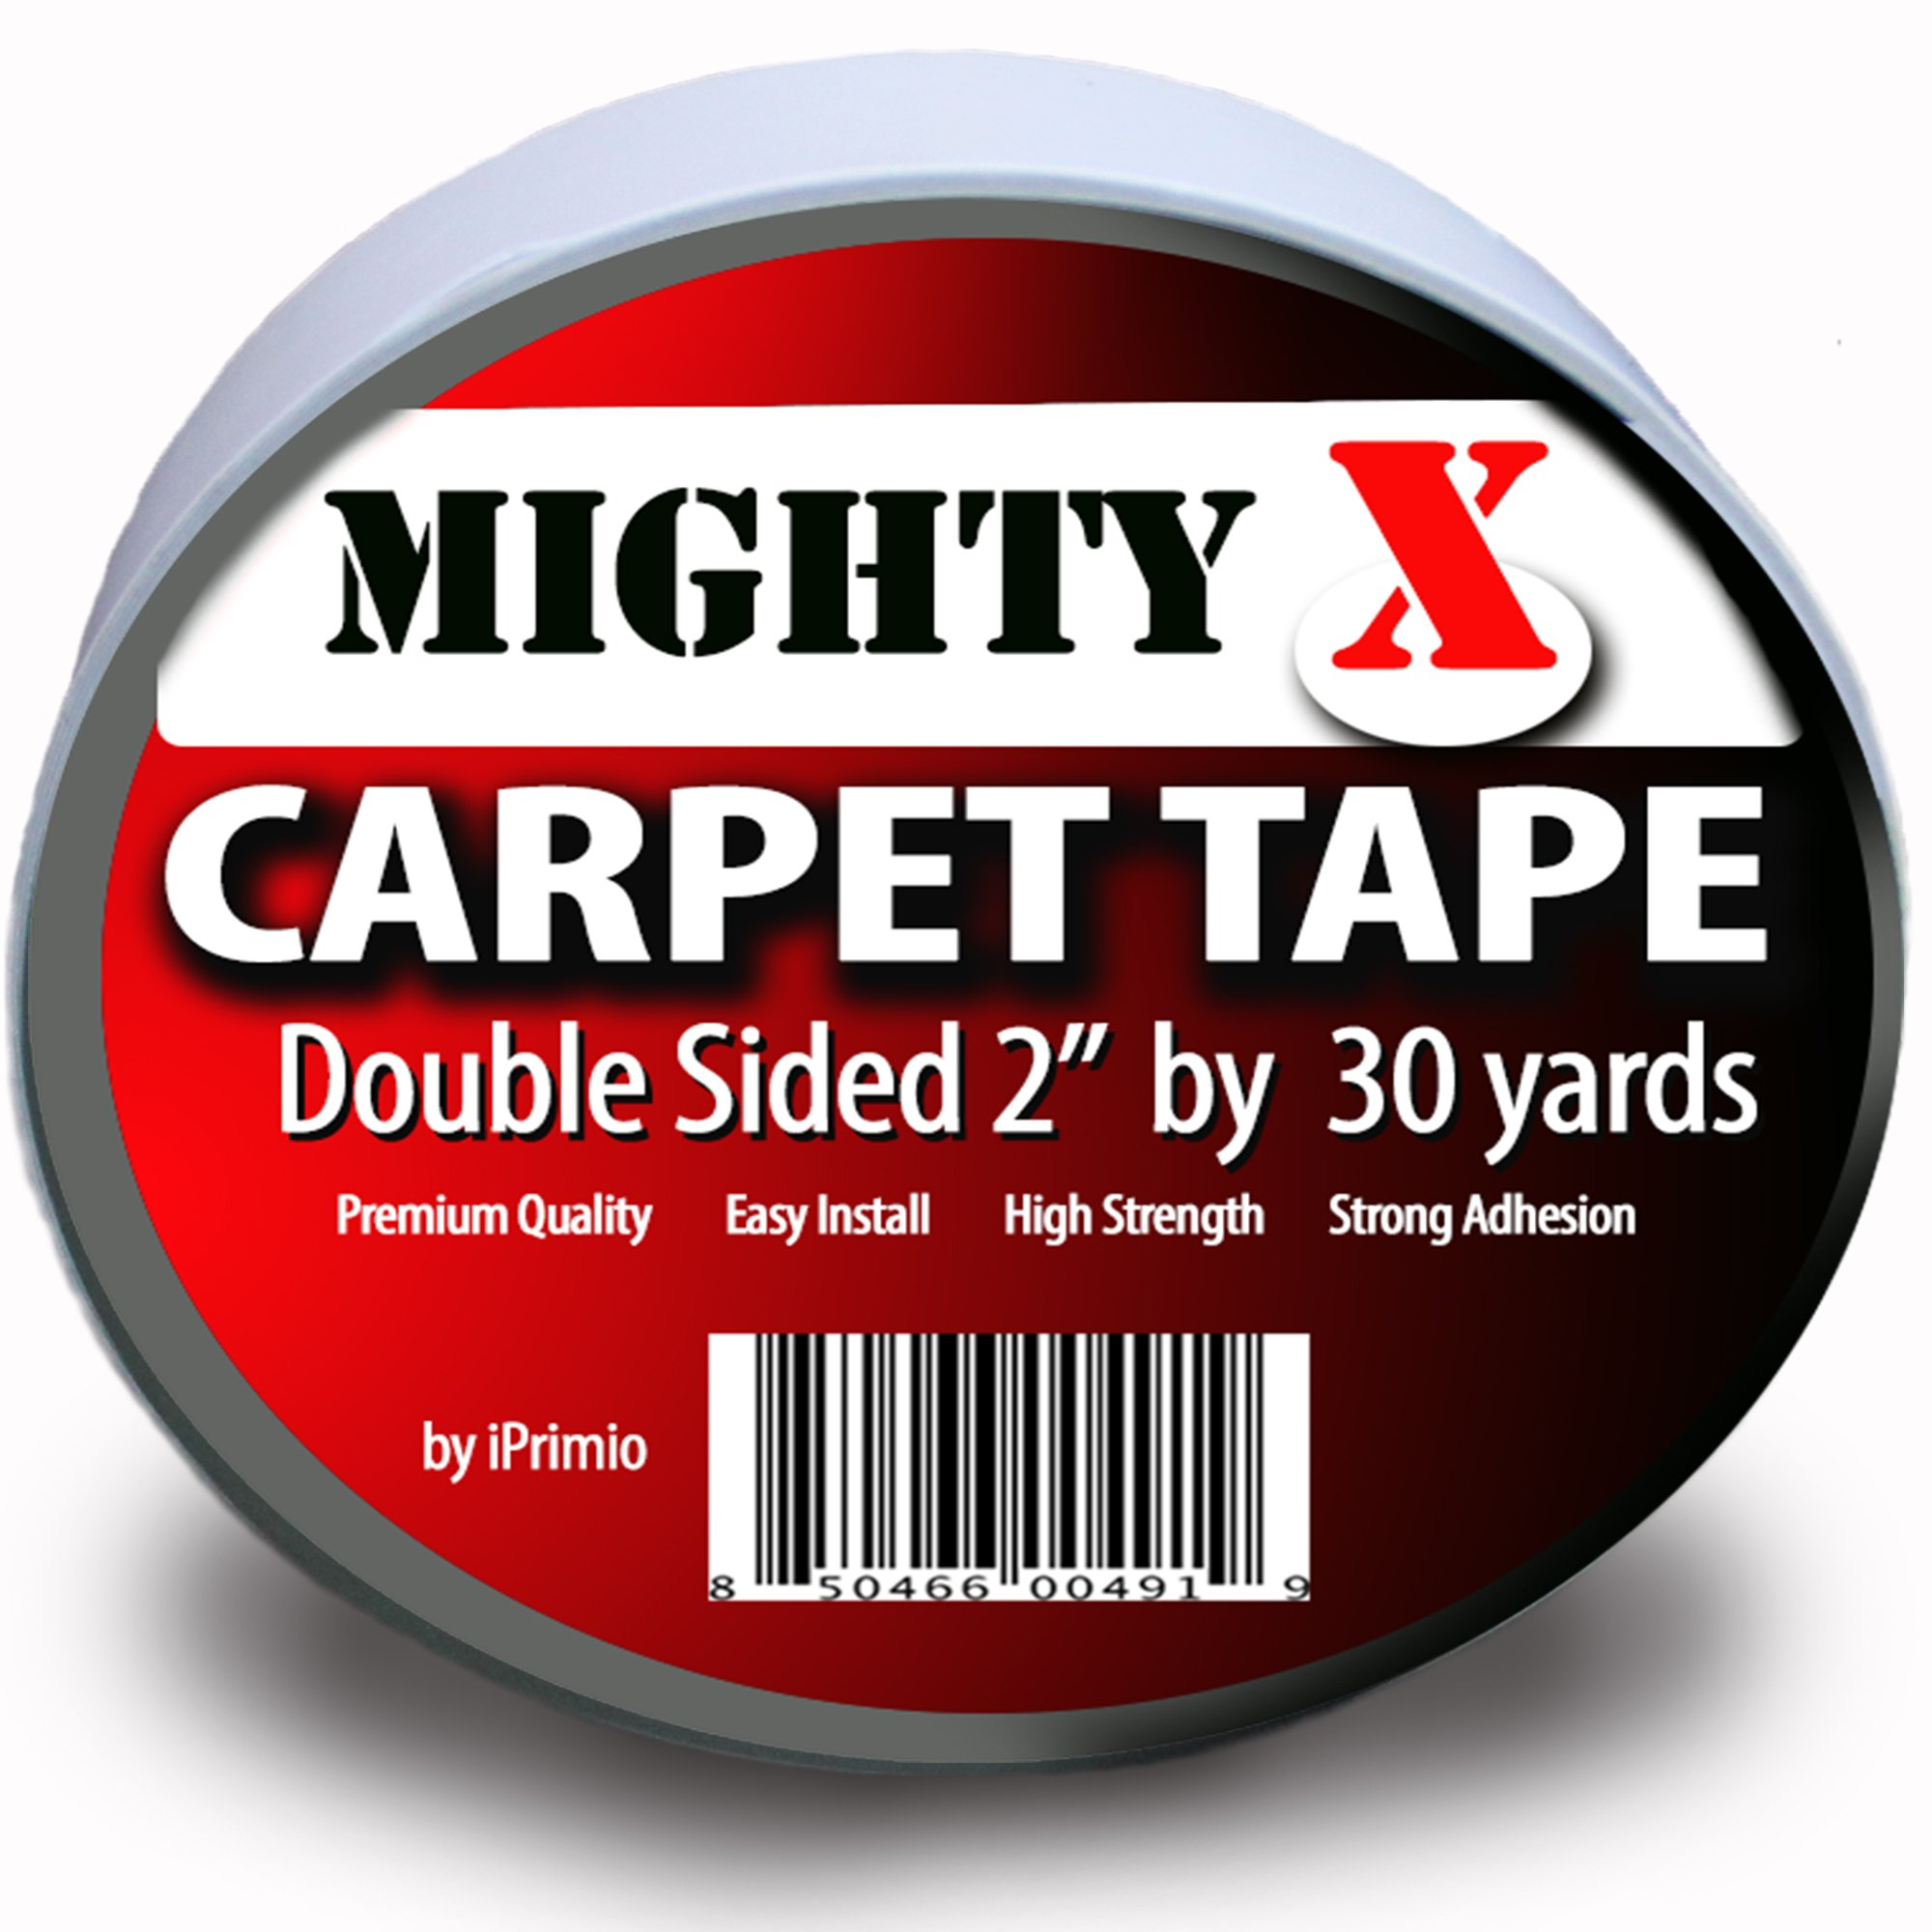 "Mighty ""X"" Indoor Rug / Carpet Tape Double Sided 30 Yards x 2 Inches - Extra Thick - Heavy Duty by iPrimio"